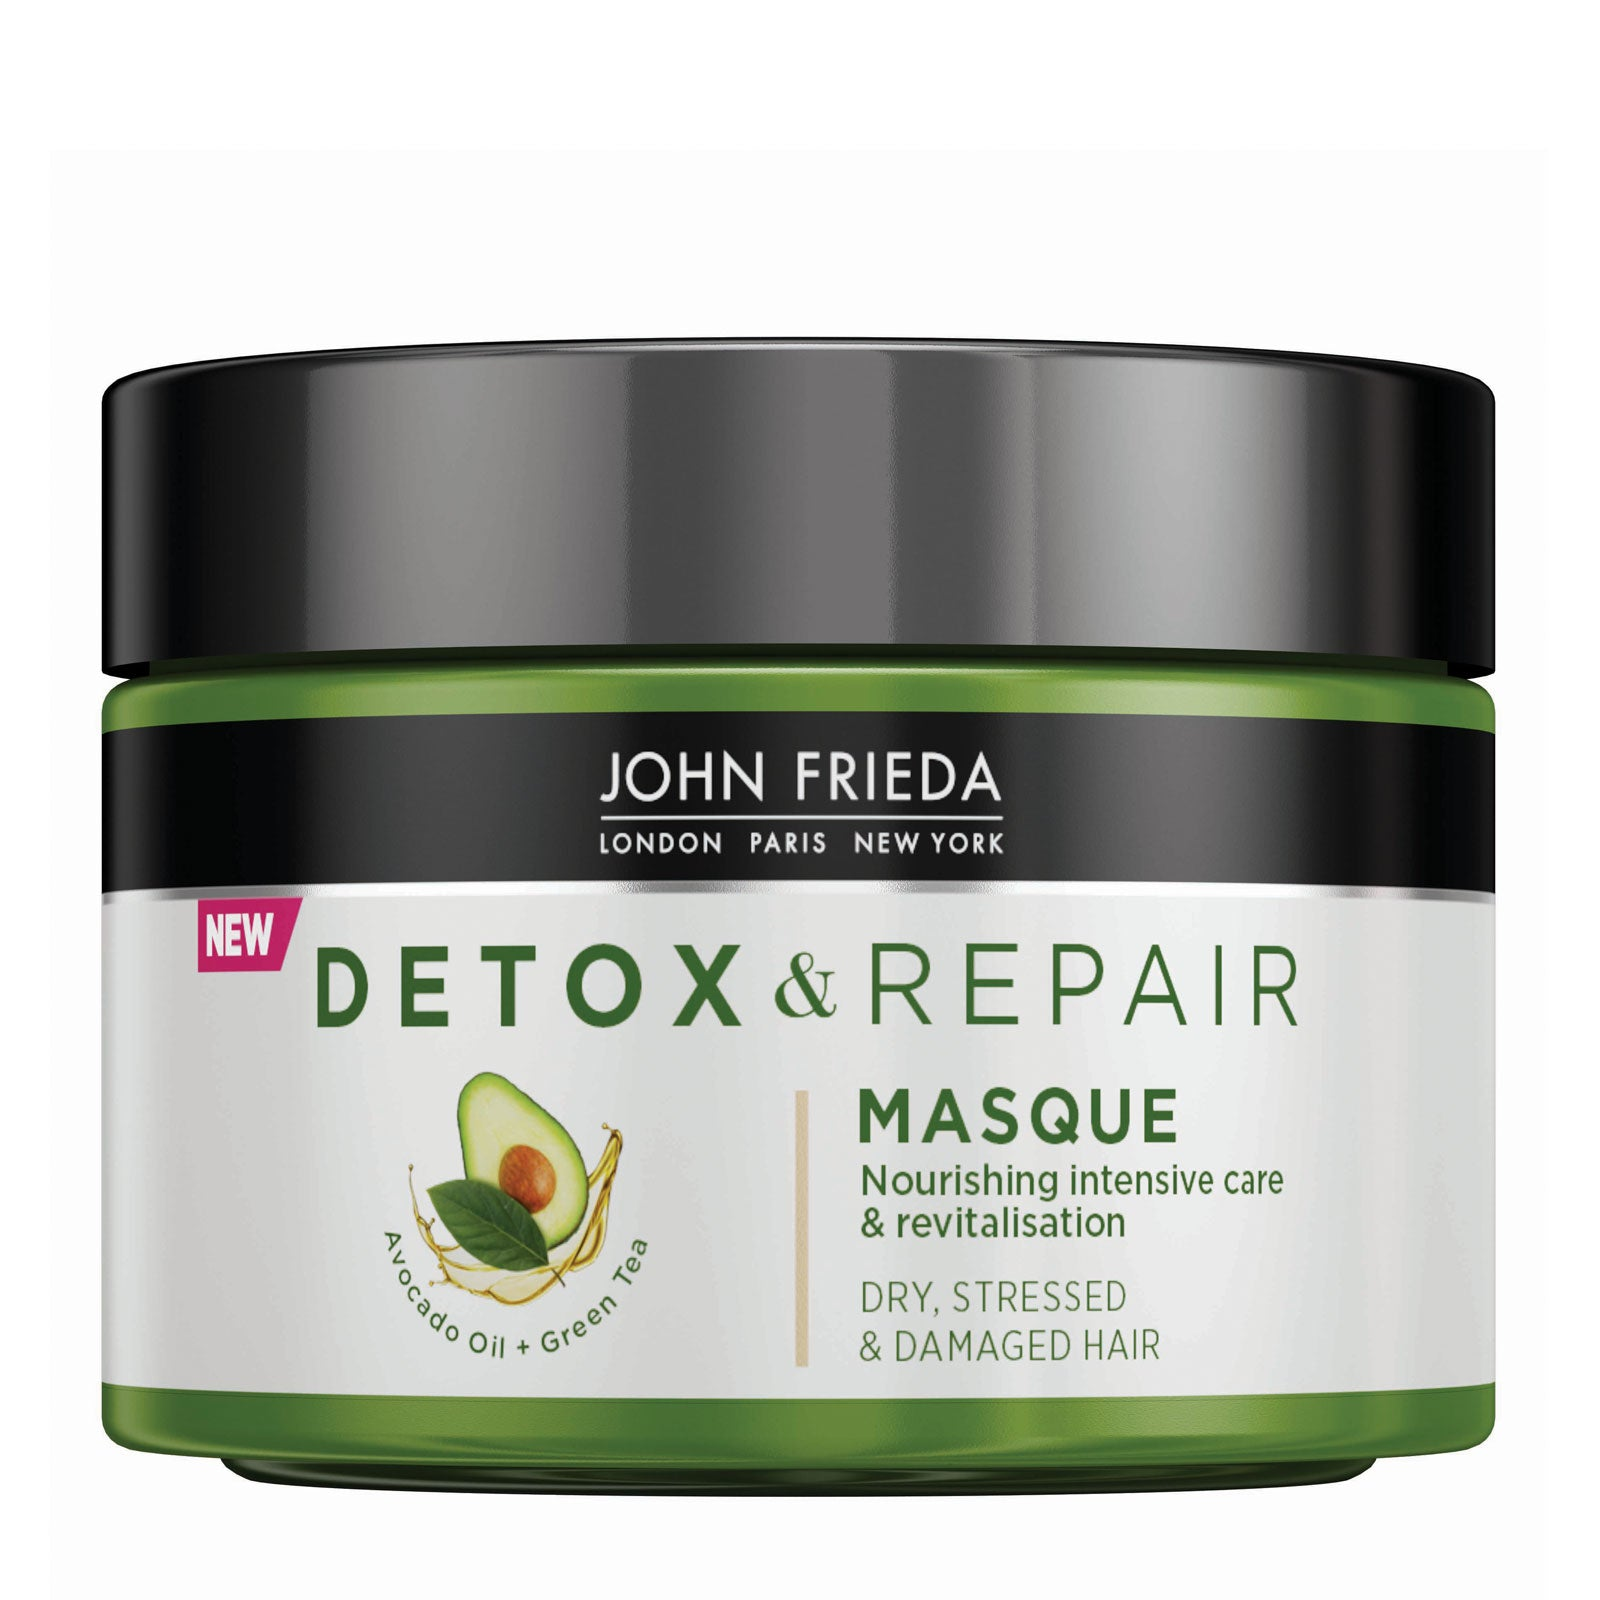 John Frieda Detox and Repair Hair Masque For Dry Stressed & Damaged Hair 250ml